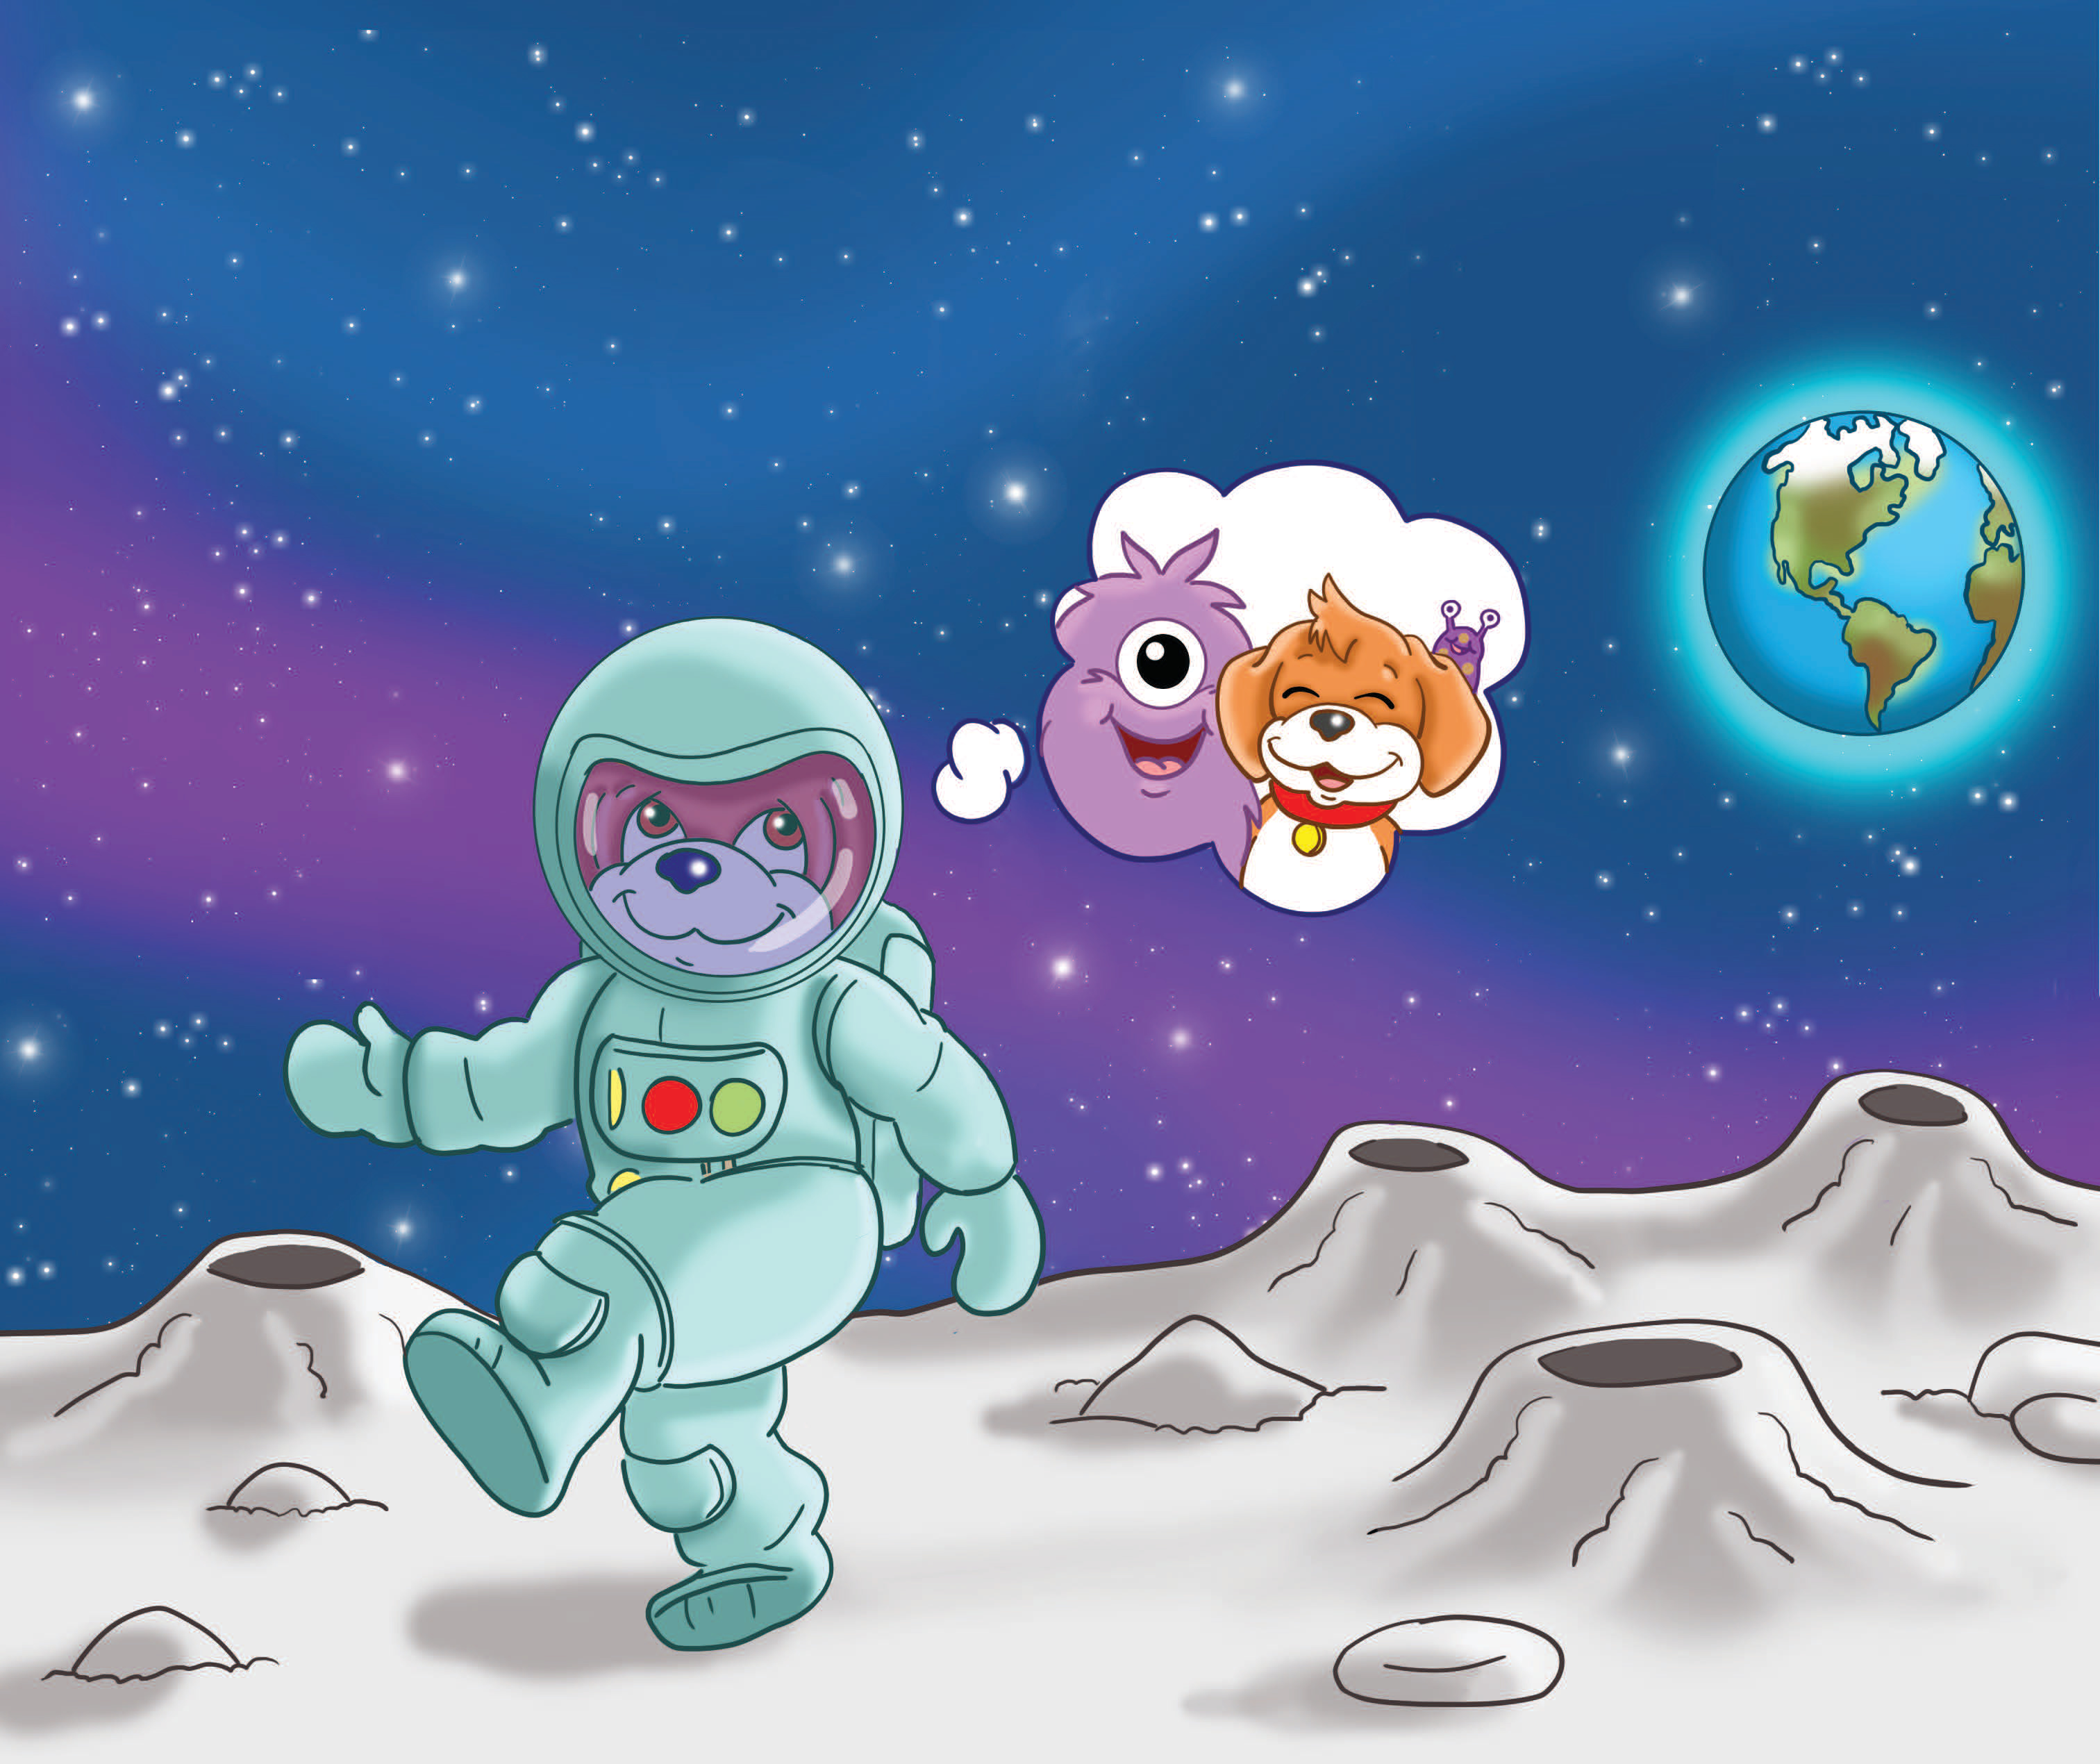 Image from MAISIE'S MOON MISSION